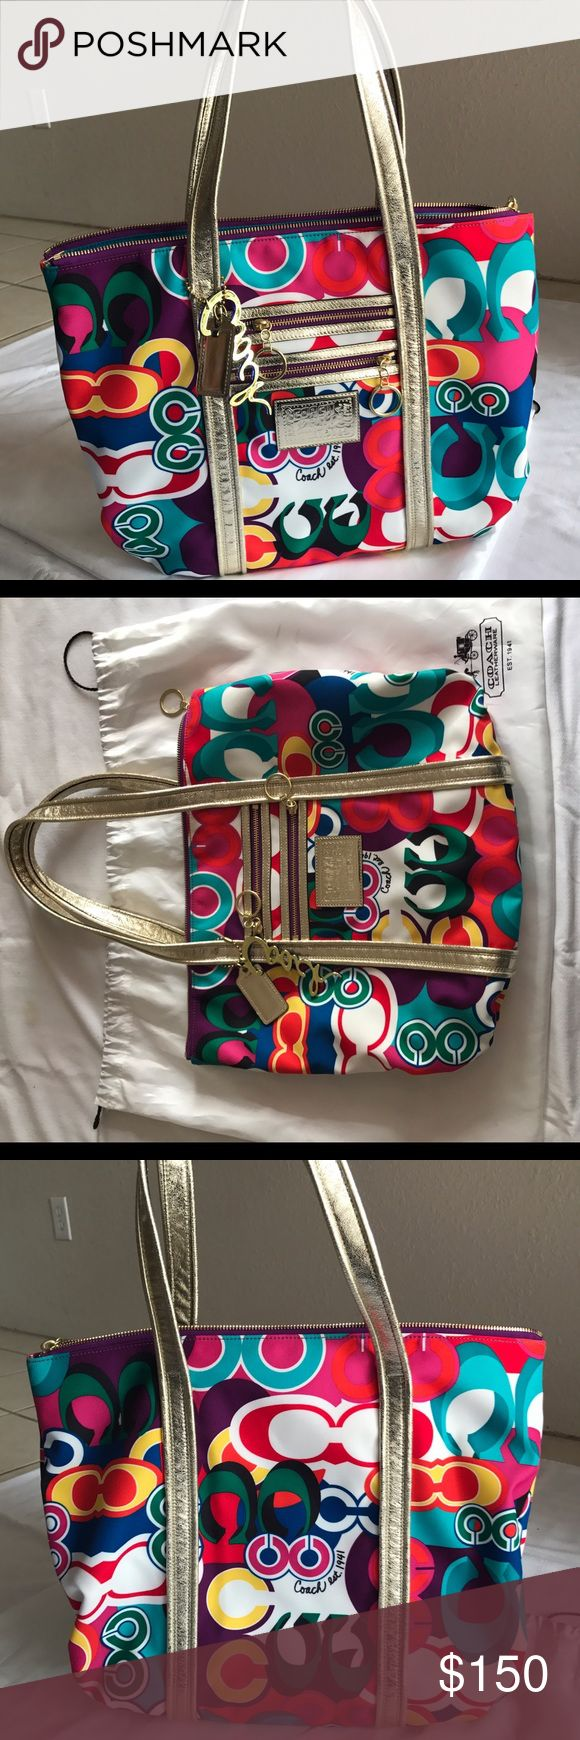 Coach poppy bag Like New Coach Poppy Purse Like New Multi colored and a beautiful inside Clean inside no wear to straps there is a small unnoticeable stain as pictured and my dust bag is also stained as pictured Coach Bags